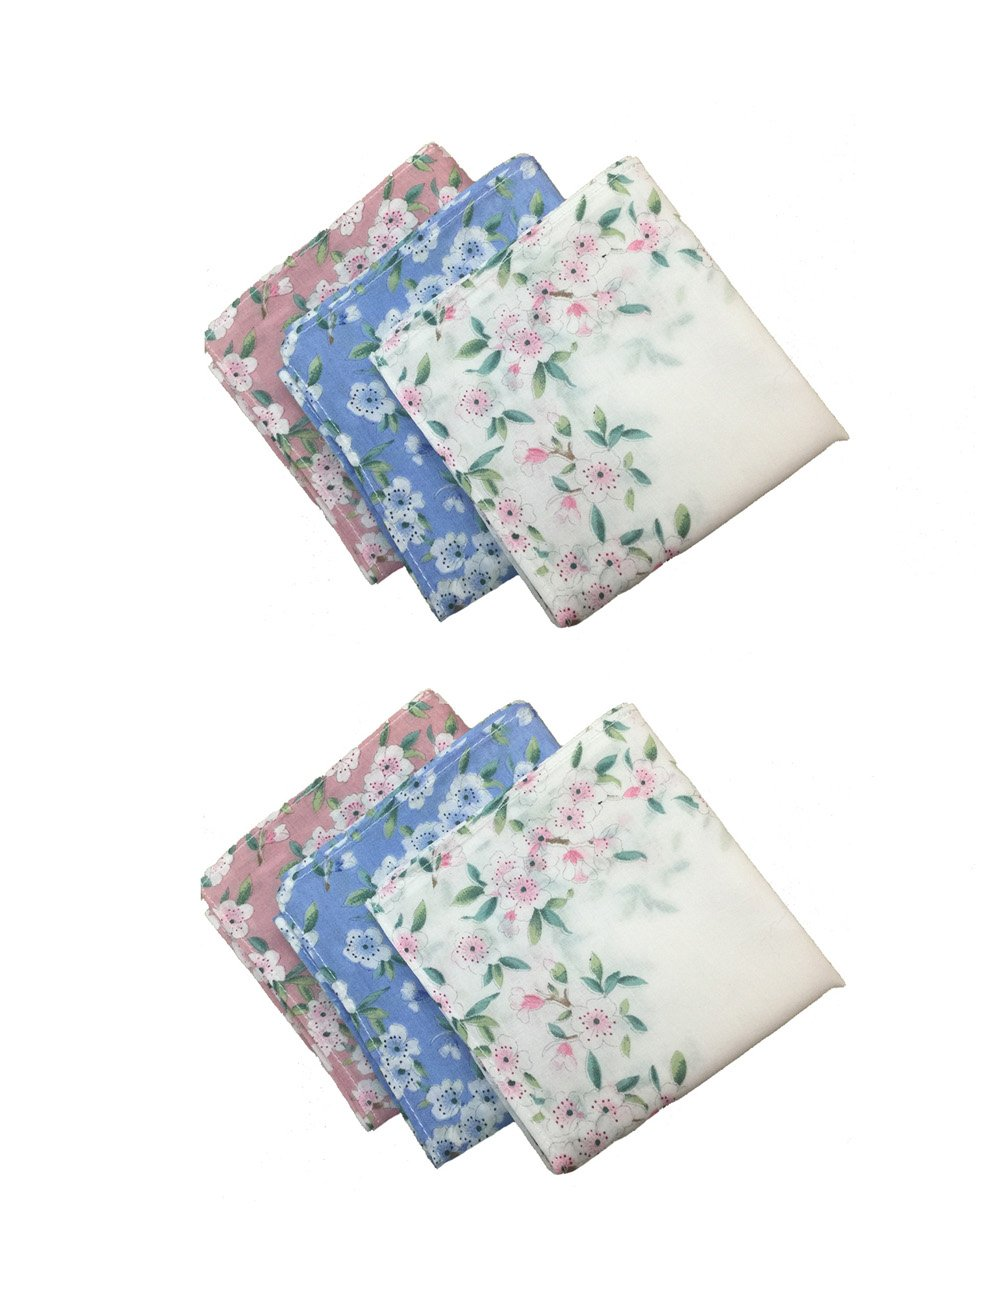 Aiklin Women 100% Cotton Handkerchiefs Flower Printed Large Wedding Fabric Hankies (3PCS)